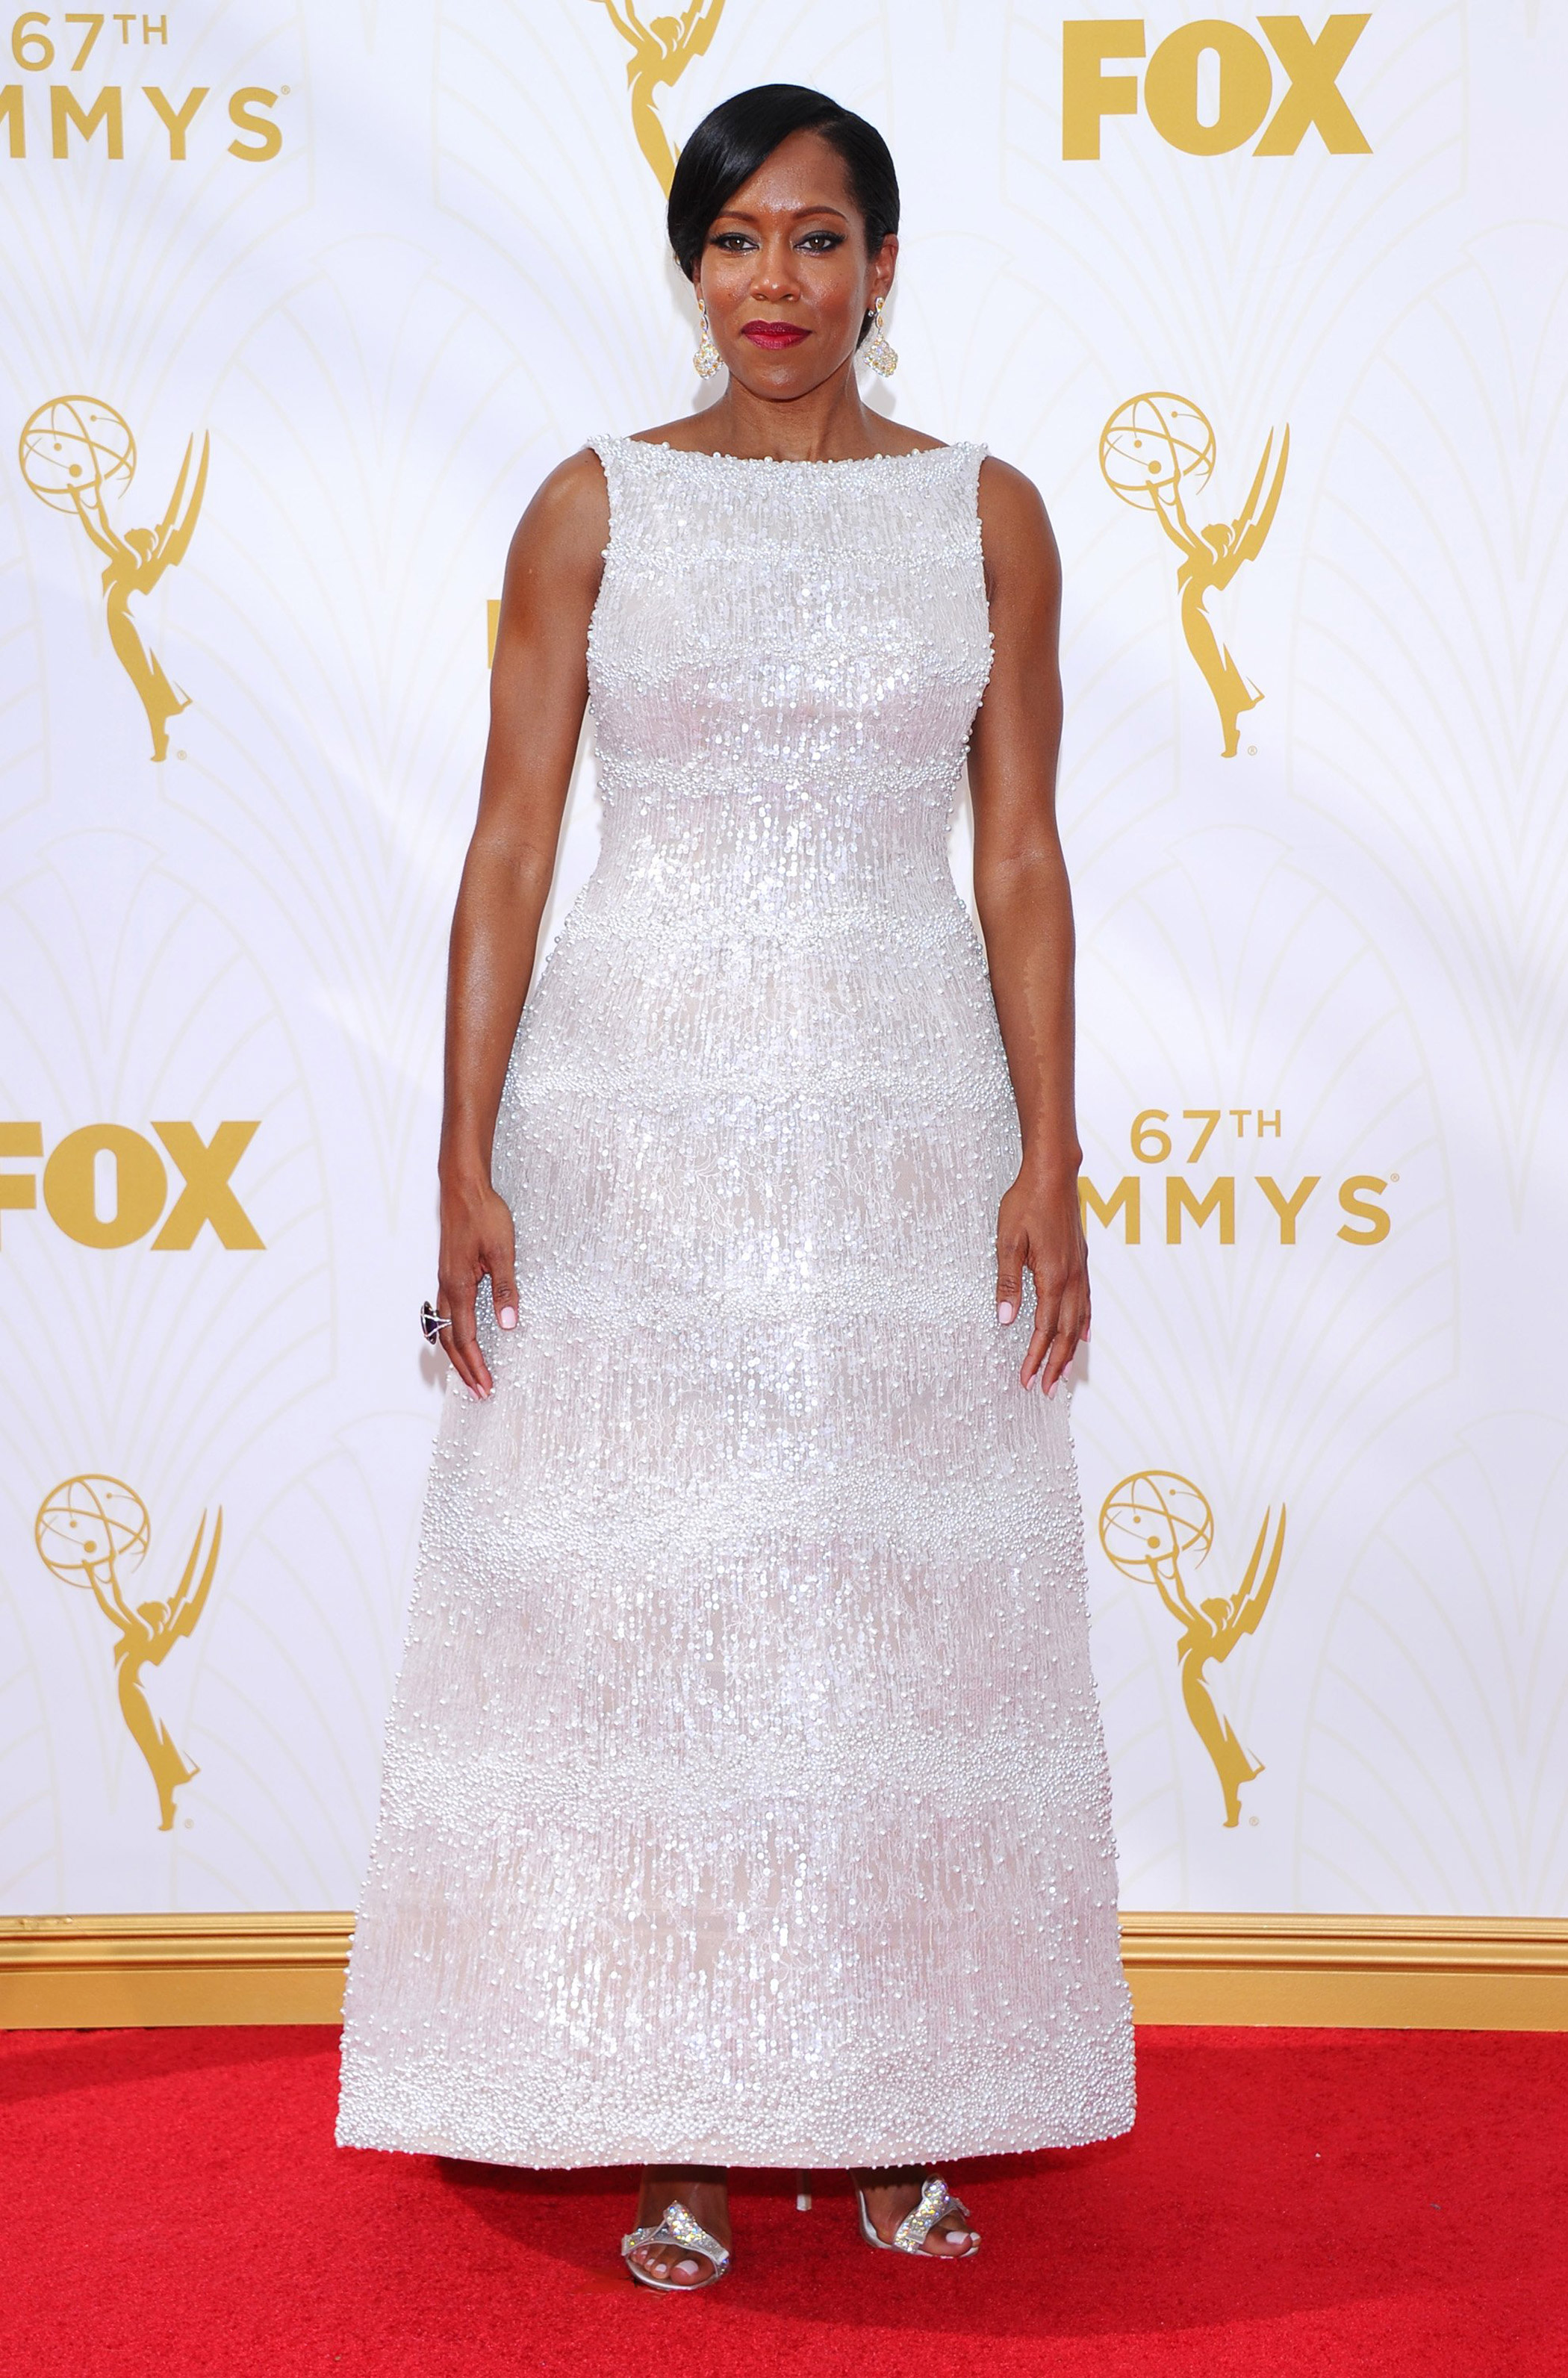 Regina King at the 67th Emmy Award on Sept. 20, 2015 in Los Angeles.